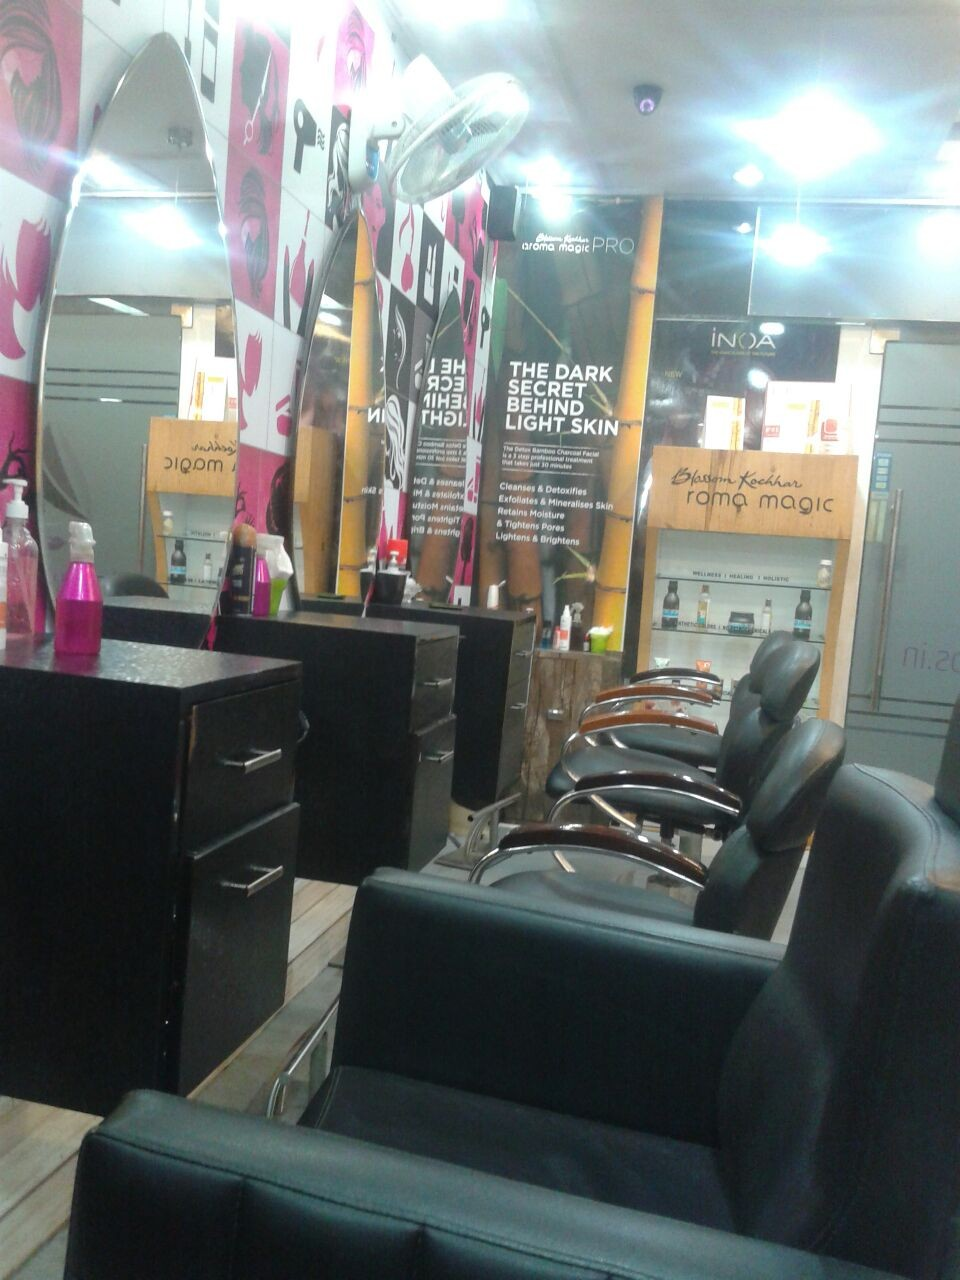 Salon in Delhi, Salon in Karkardooma